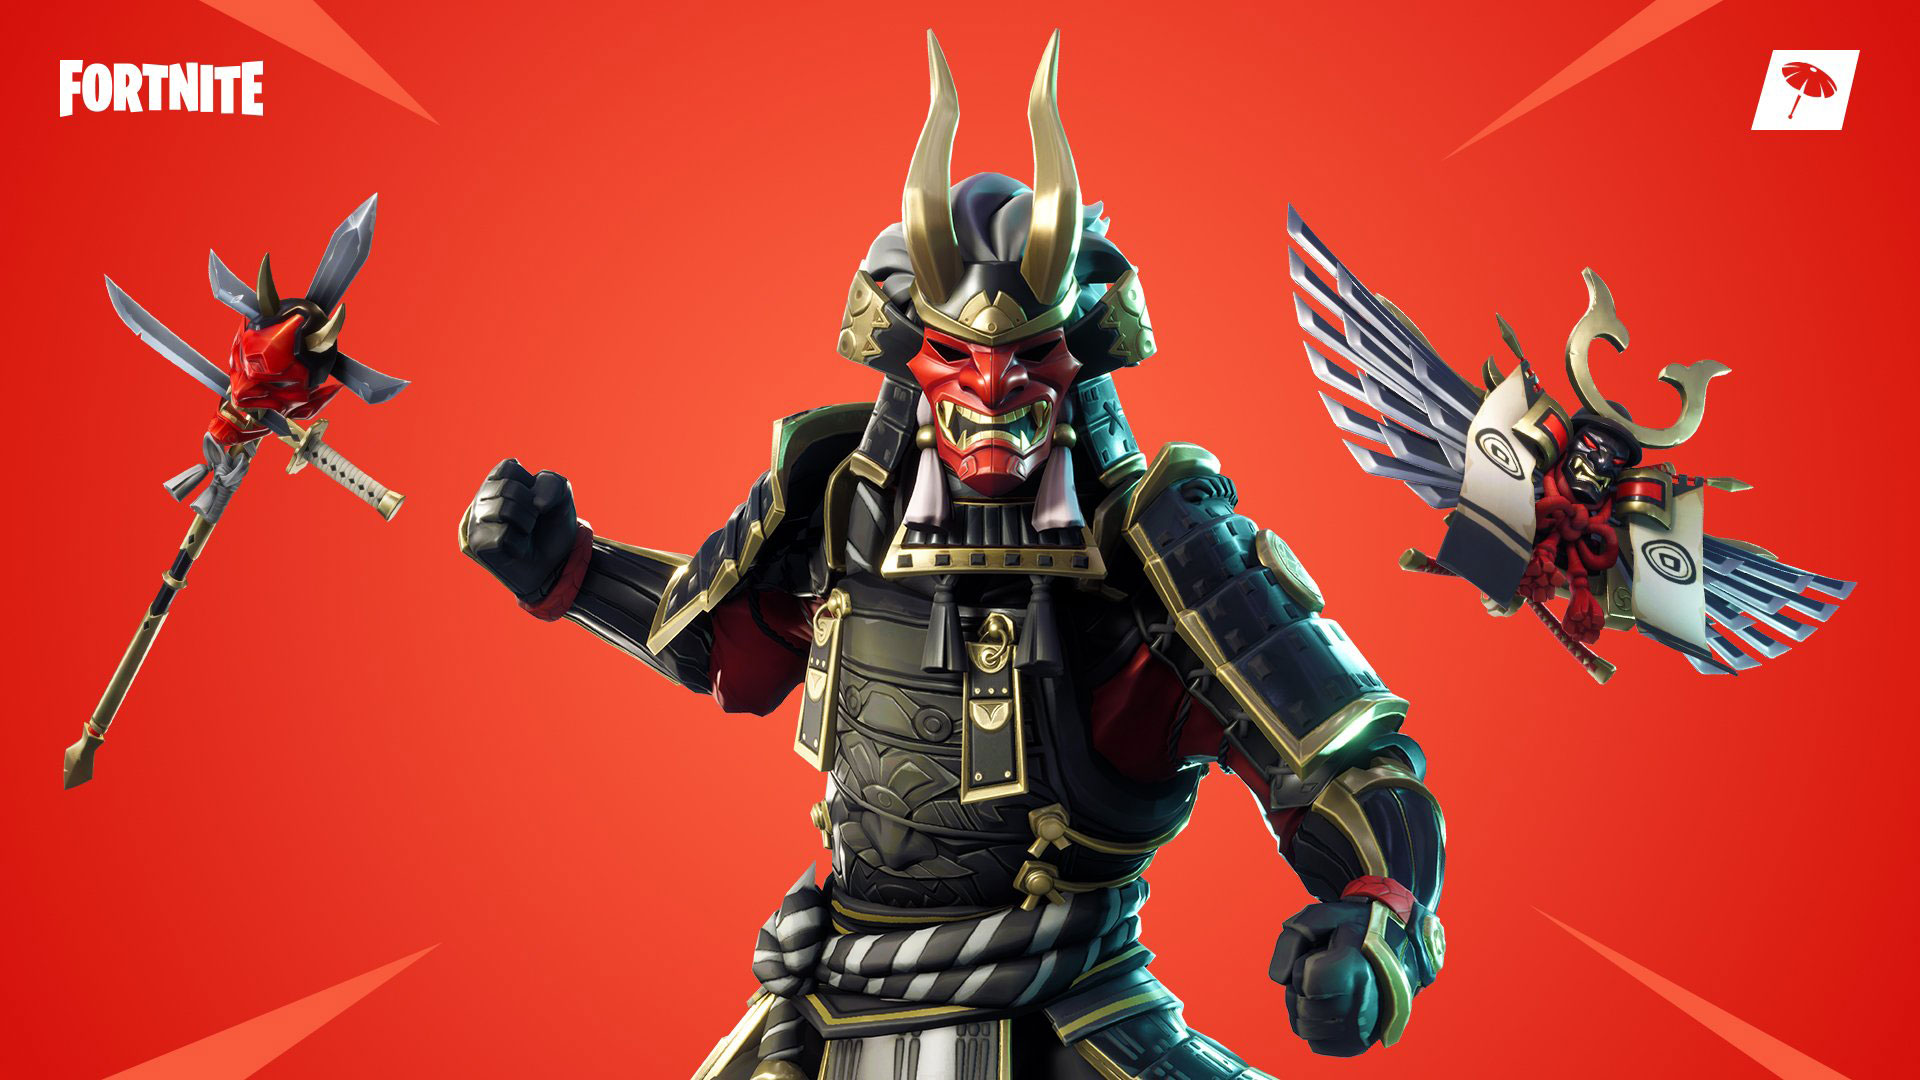 Fortnite Shogun Skin   Outfit PNGs Images   Pro Game Guides 1920x1080